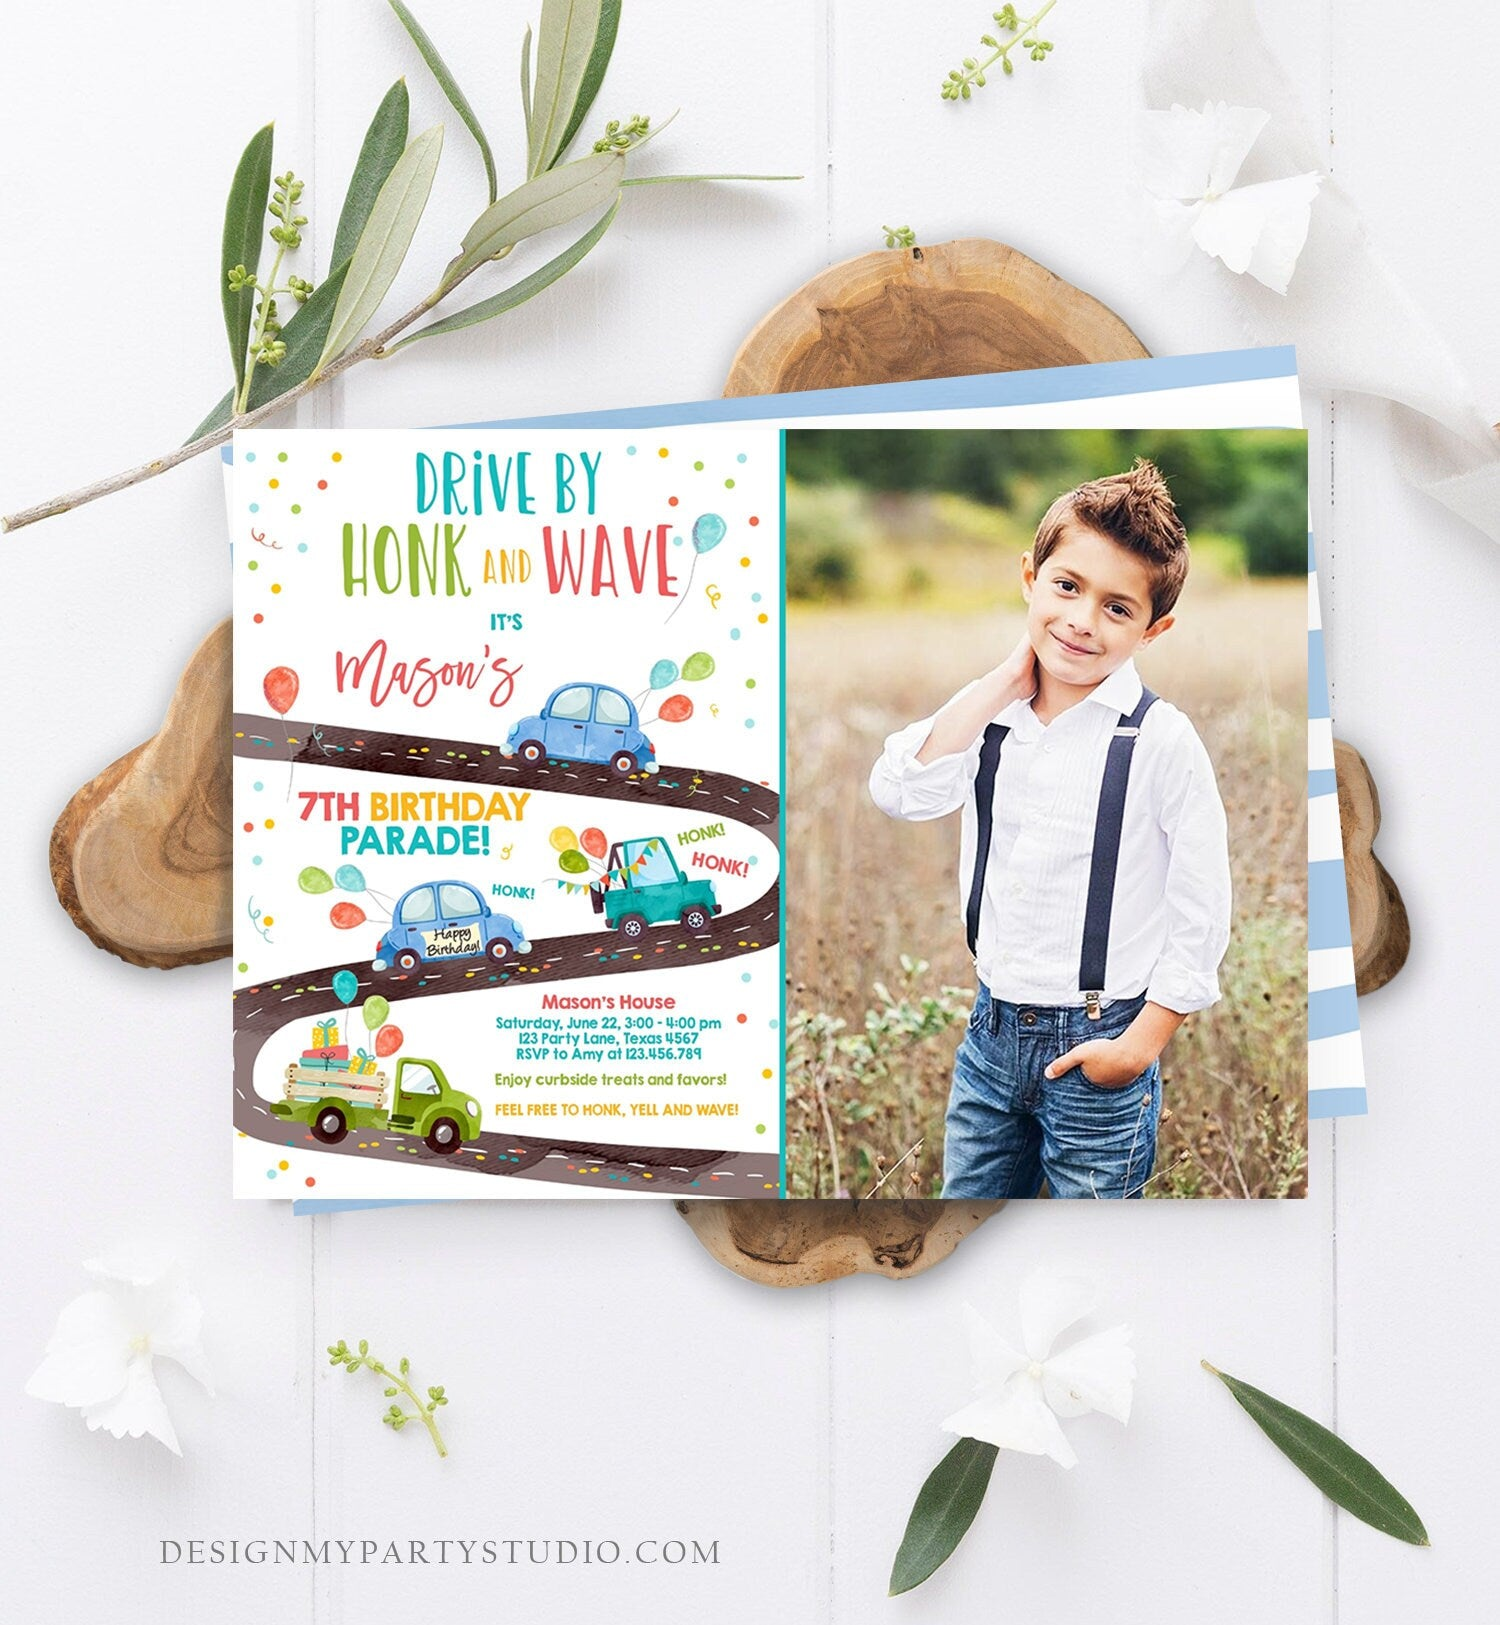 Editable Drive By Birthday Parade Invitation Virtual Party Invite Honk Wave Car Boy Blue Quarantine Instant Download Digital Corjl 0333